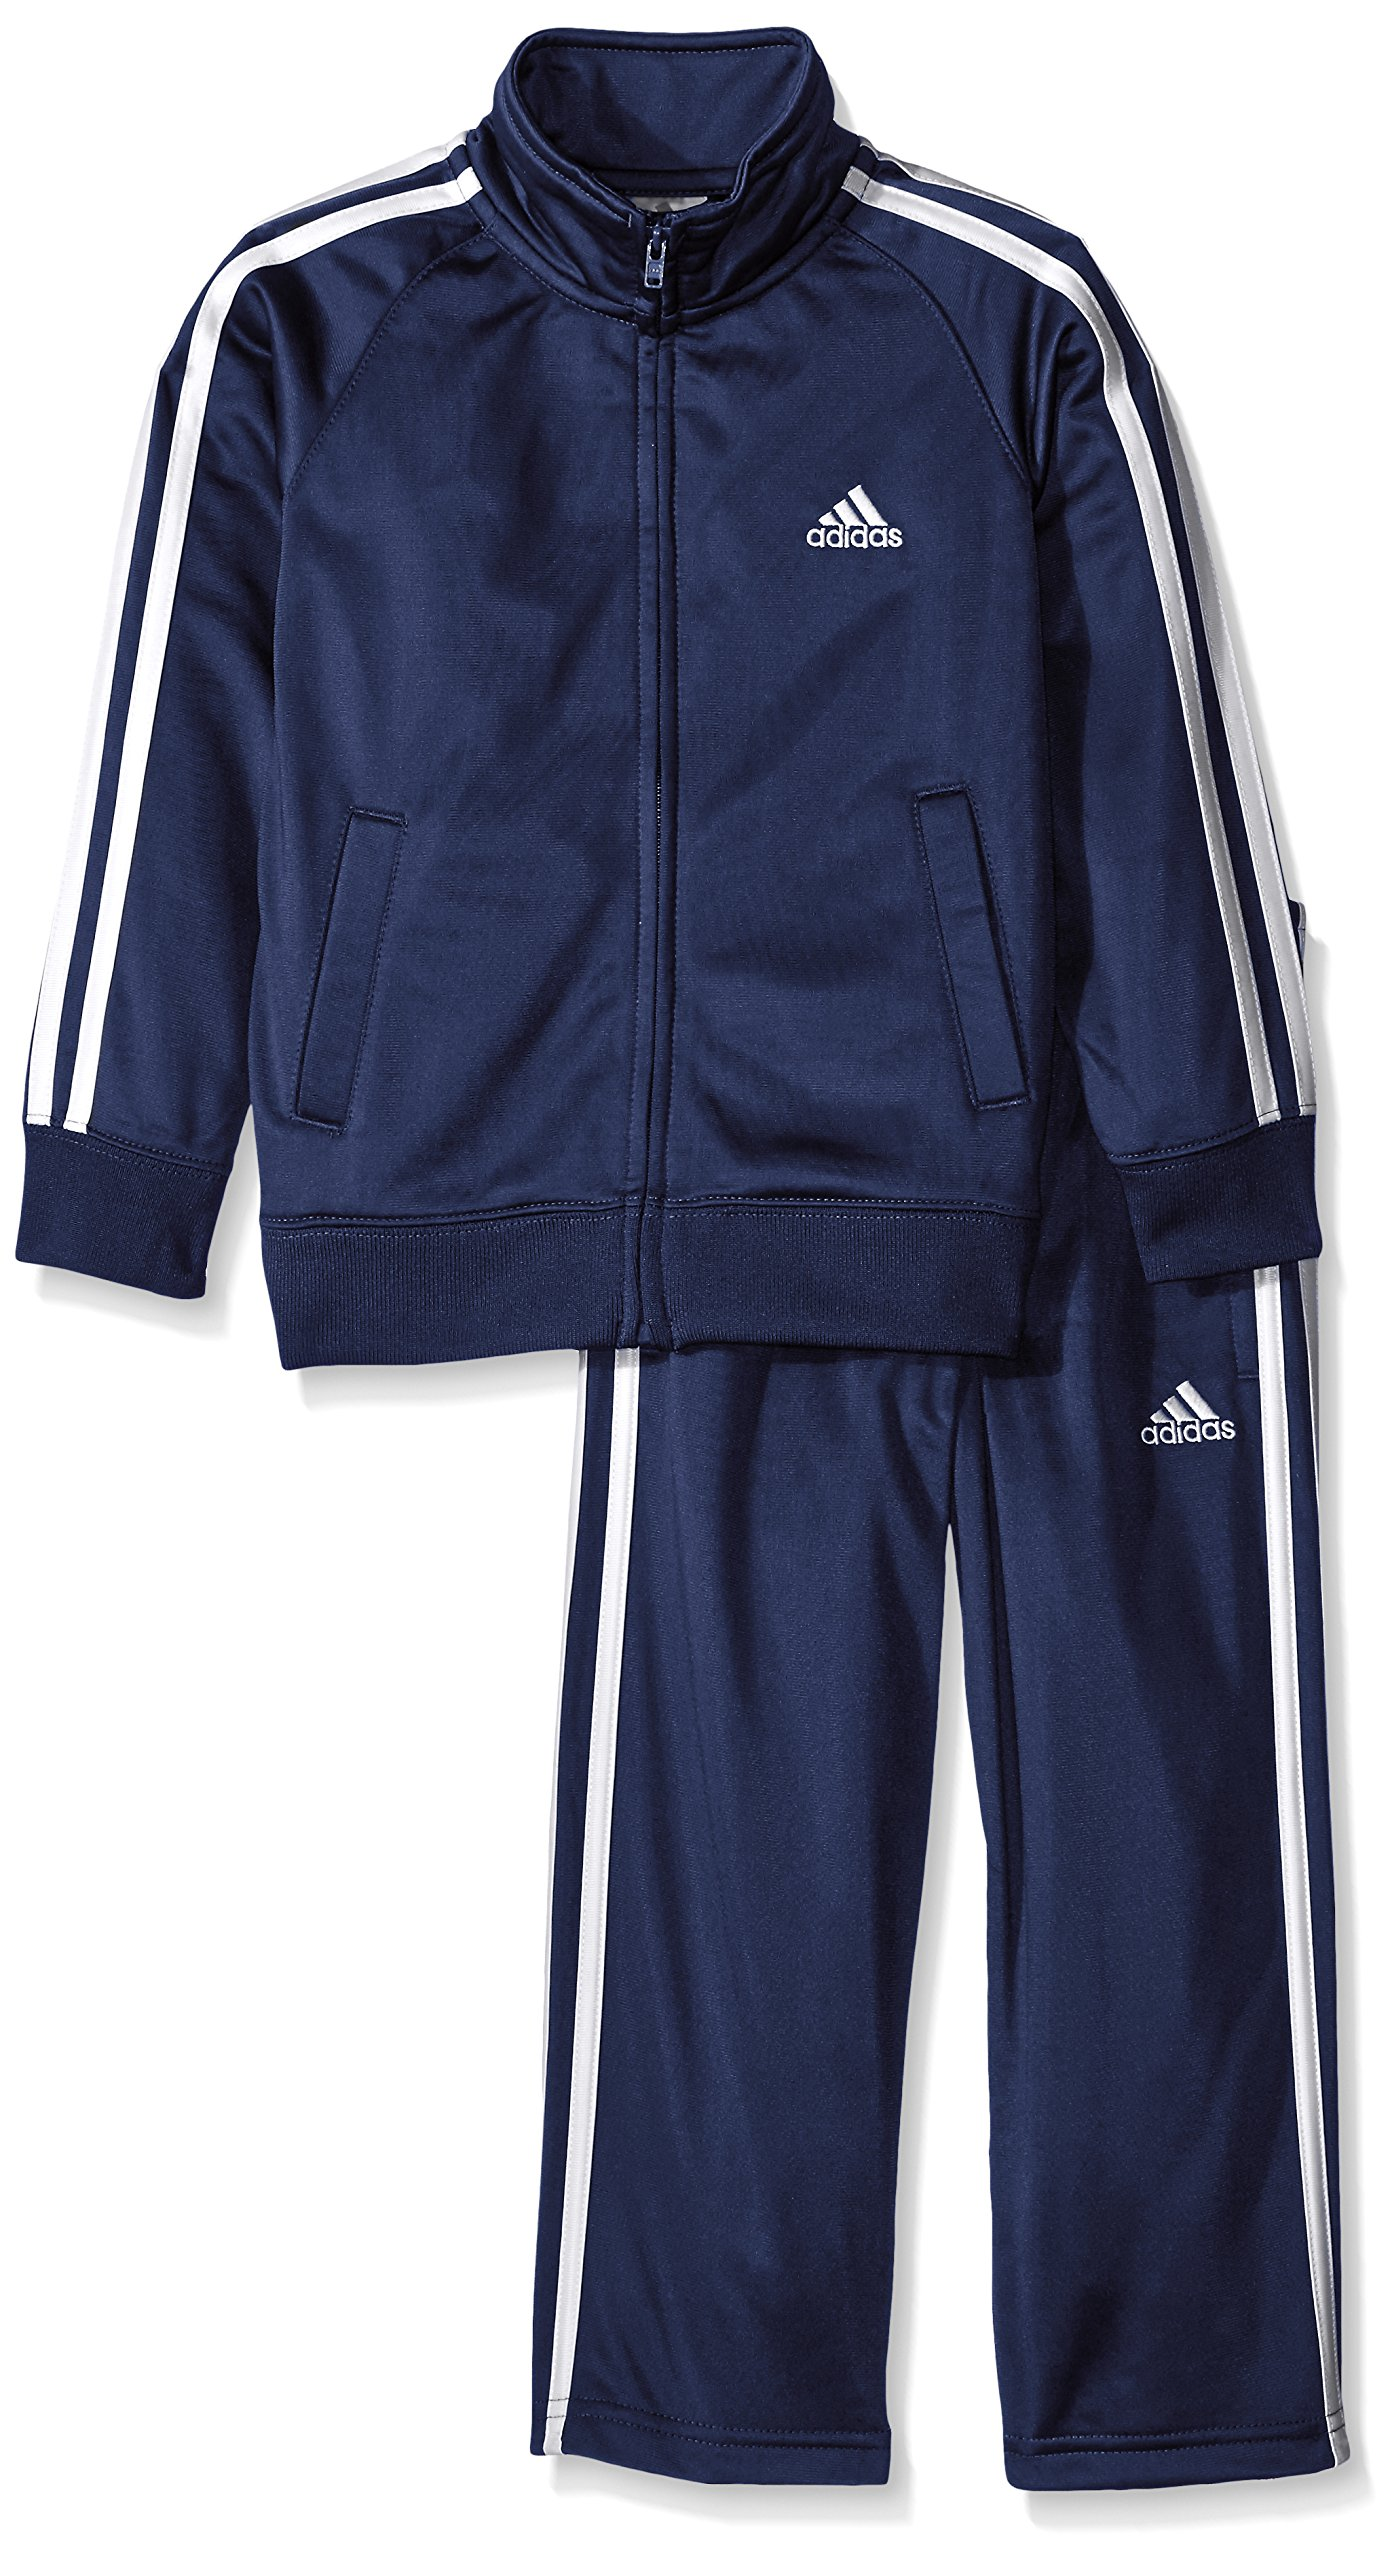 adidas Toddler Boys' Iconic Tricot Jacket and Pant Set, Navy/White, 4 by adidas